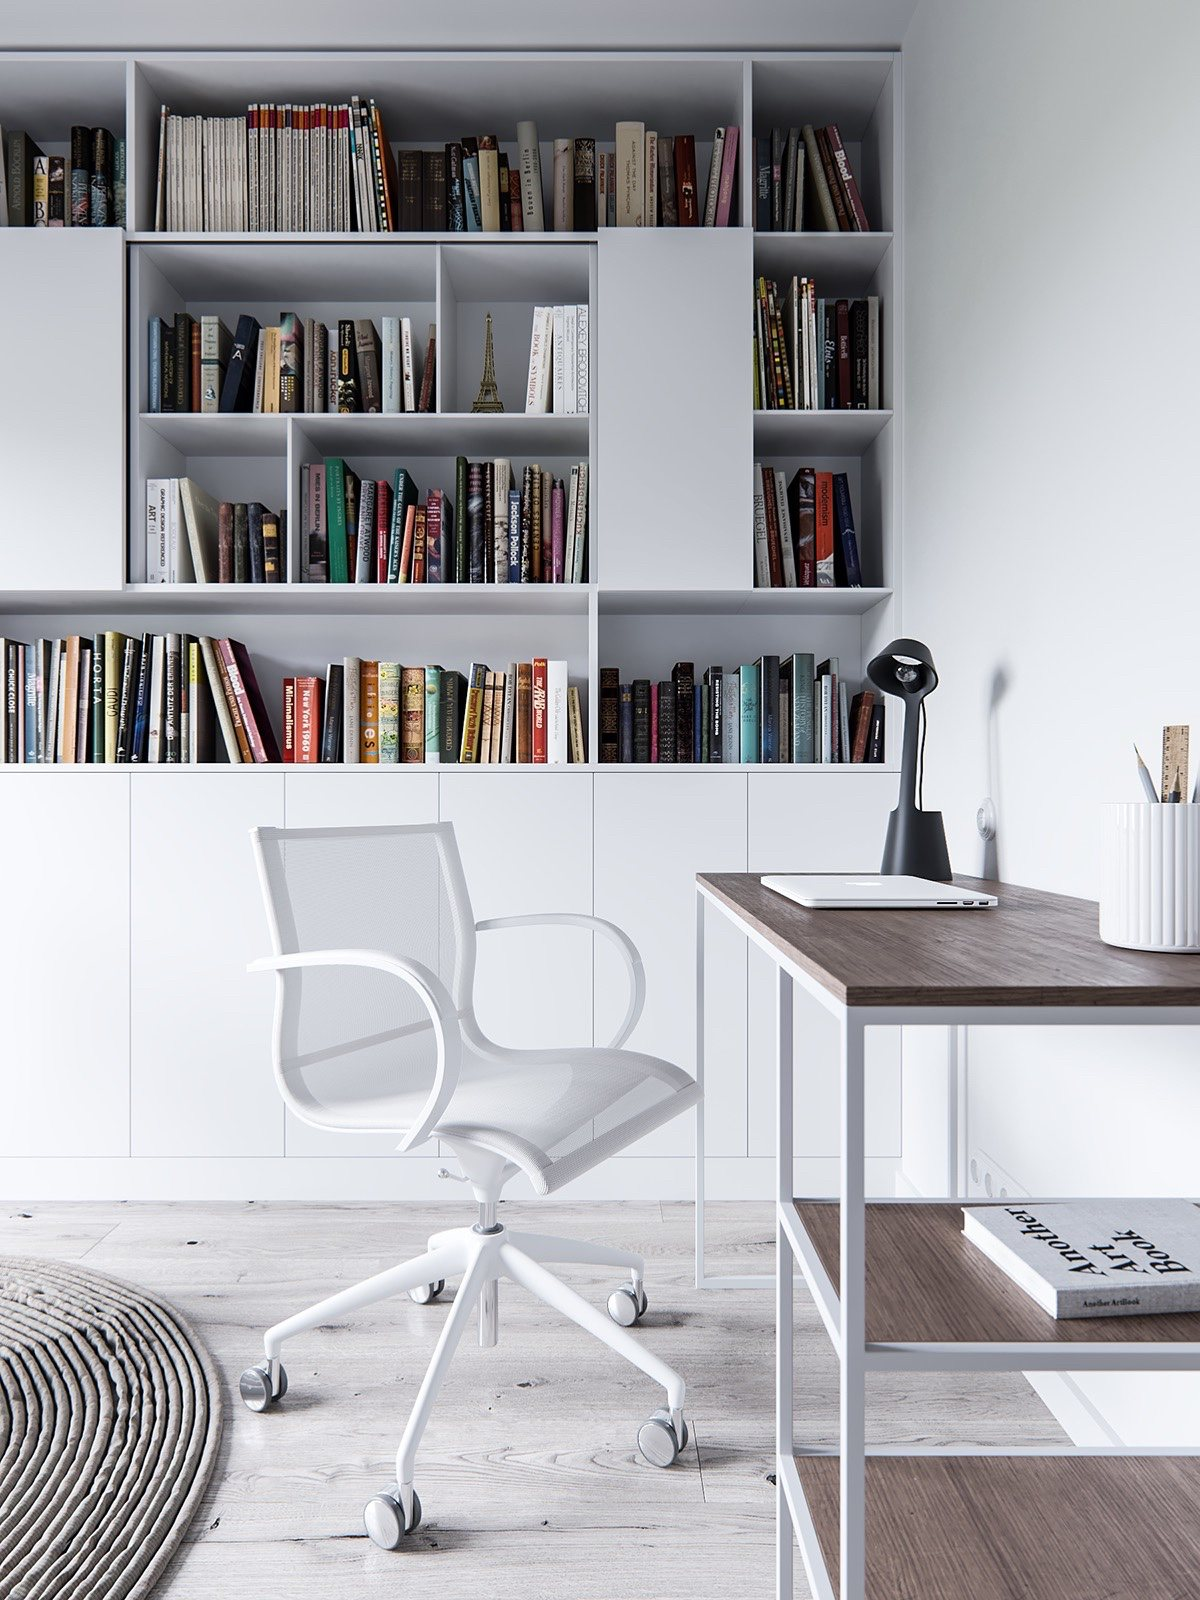 Stylish Home Office And Library With Minimalist Interior Decor - A pair of stylish apartments that put their extra rooms to good use